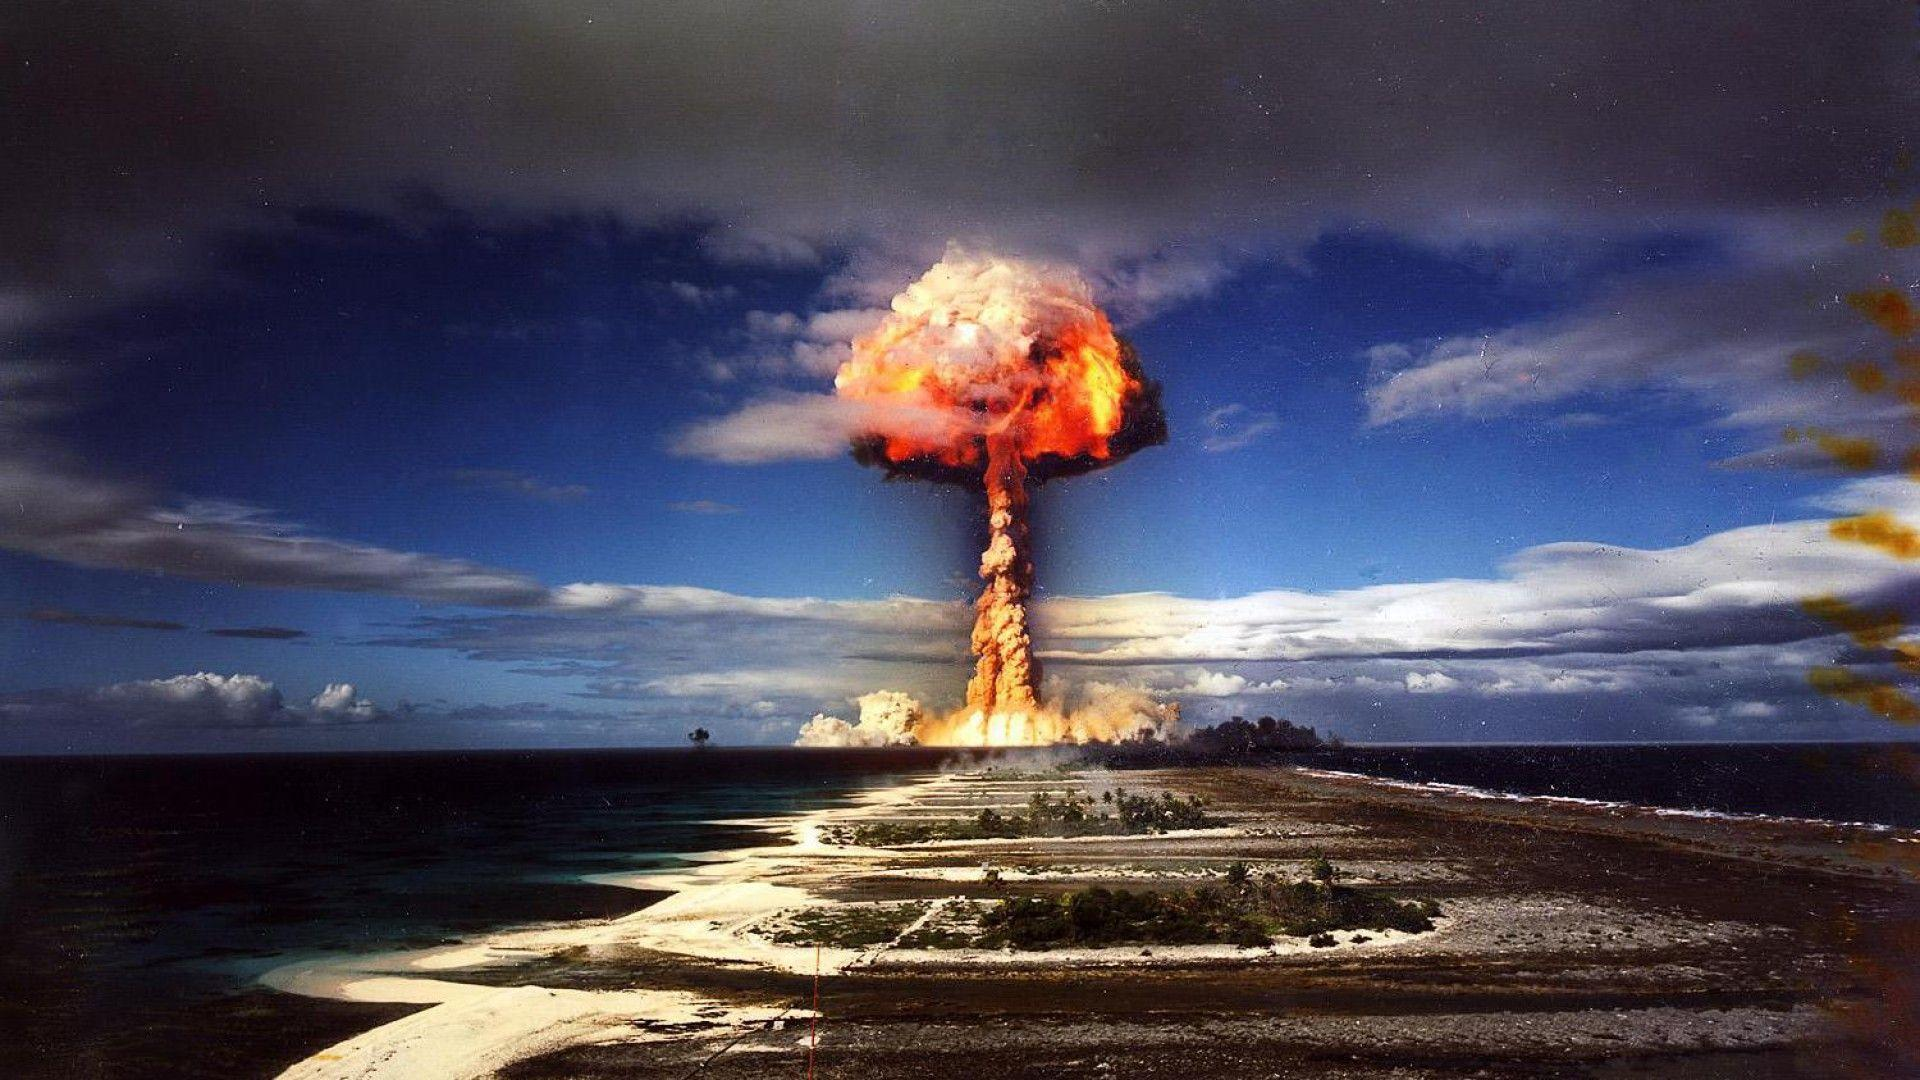 Wallpapers For > Nuclear Explosion Wallpaper 1920x1080